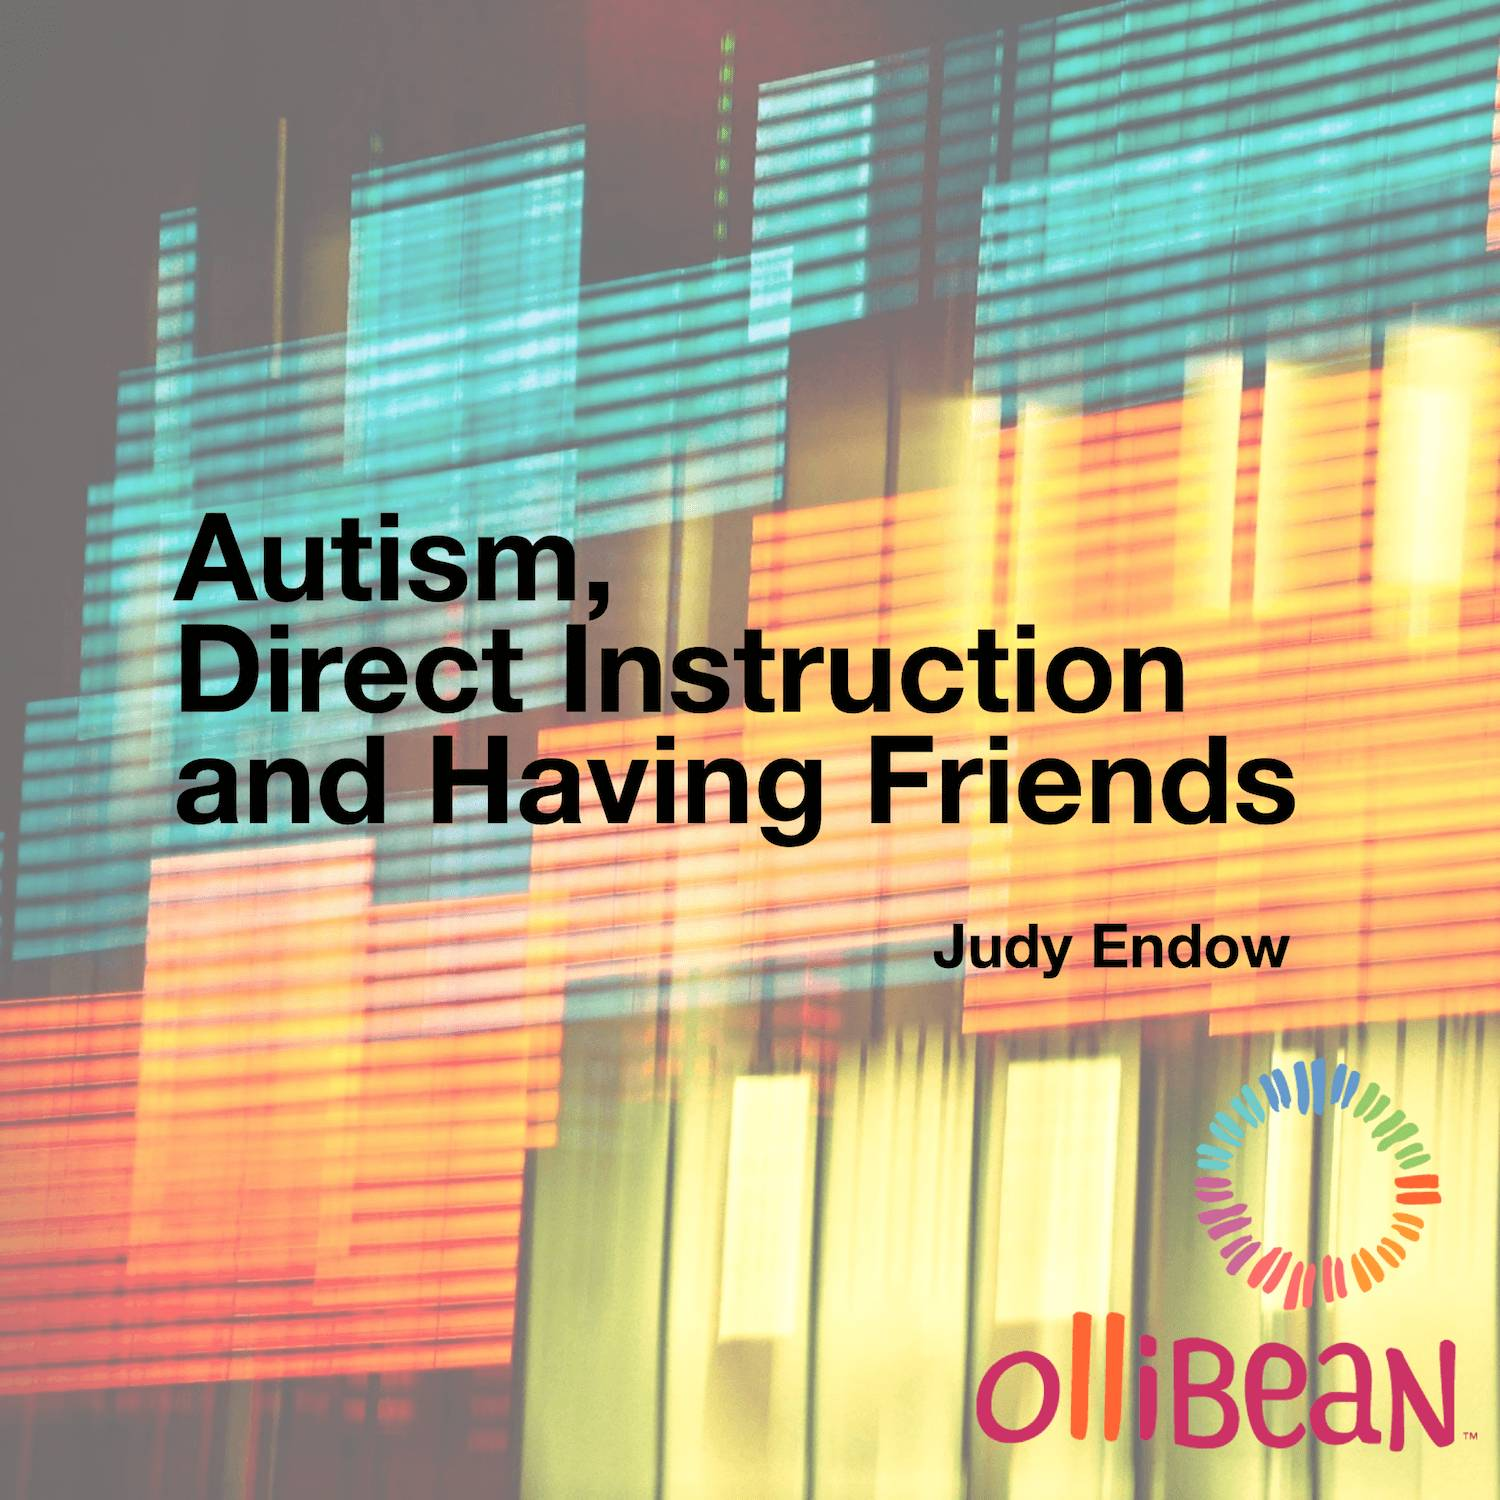 Autism, Direct Instruction and Having Friends, Judy Endow on Ollibean